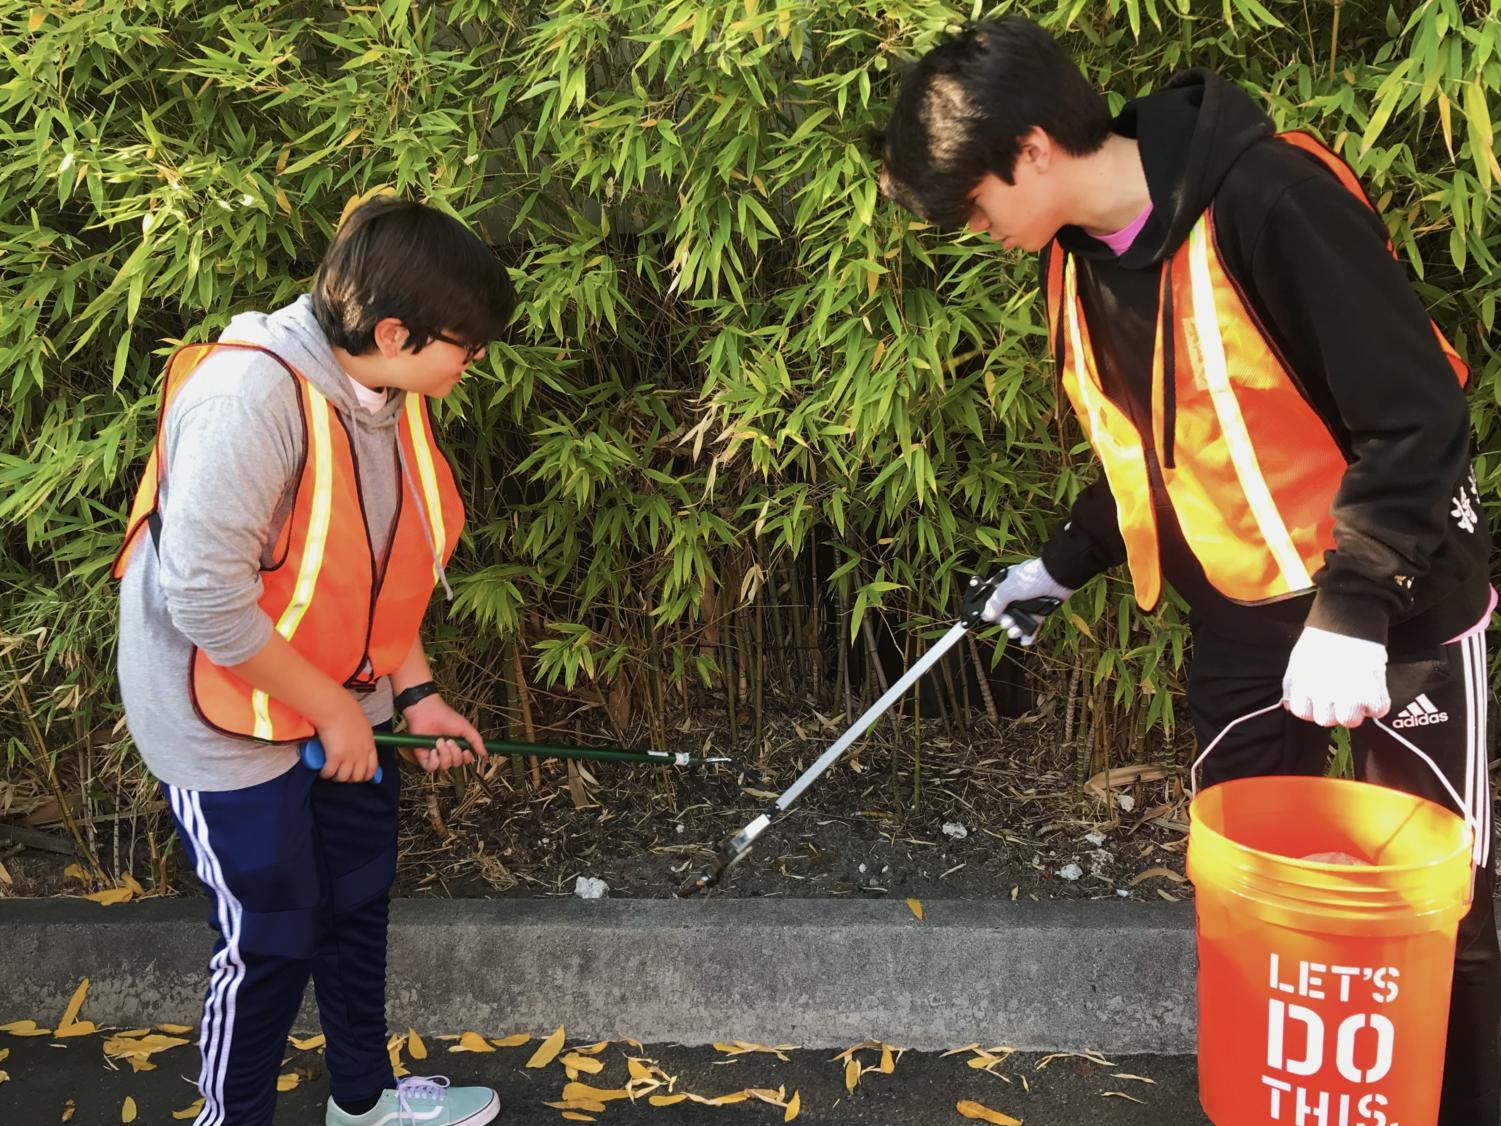 Sophomores Eliot Ozaki and Sergio Contreras work together to successfully clean up the bushes on Laurel Street.